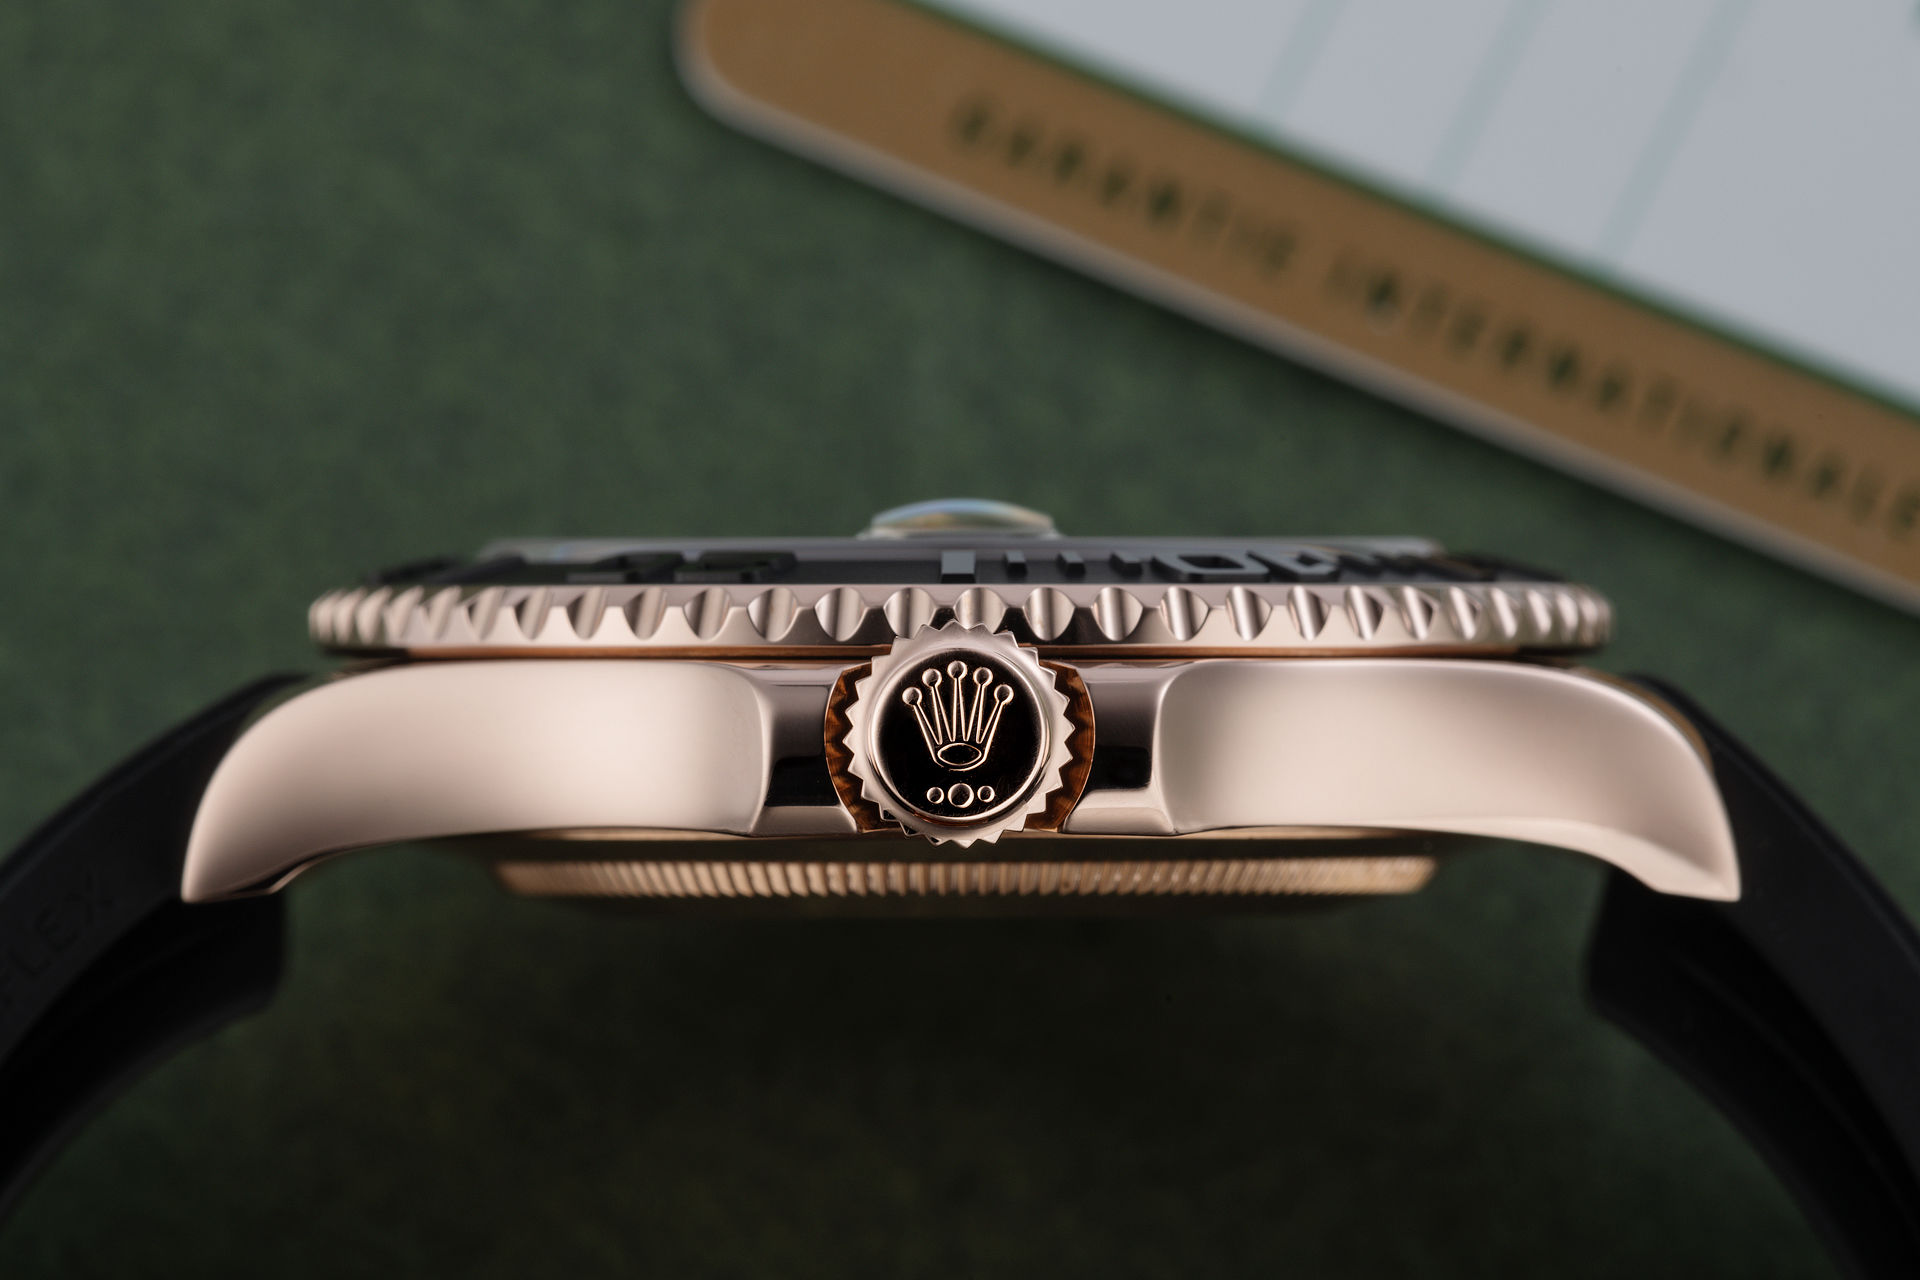 ref 116655 | 18ct Everose Gold 'Full Set' | Rolex Yacht-Master